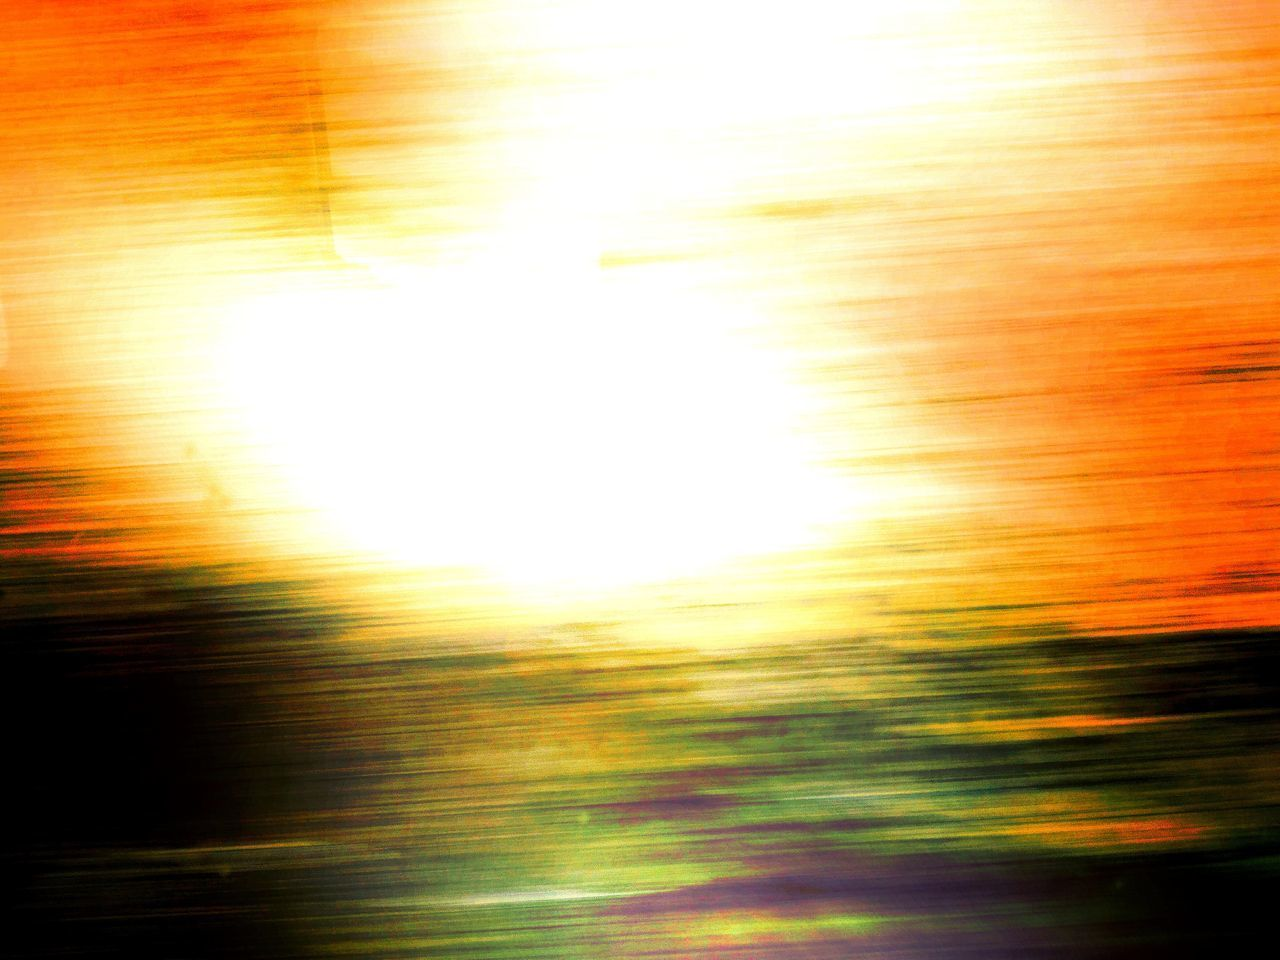 abstract, backgrounds, blurred motion, multi colored, yellow, sunlight, sunset, nature, sun, textured, no people, defocused, painted image, outdoors, beauty in nature, day, sky